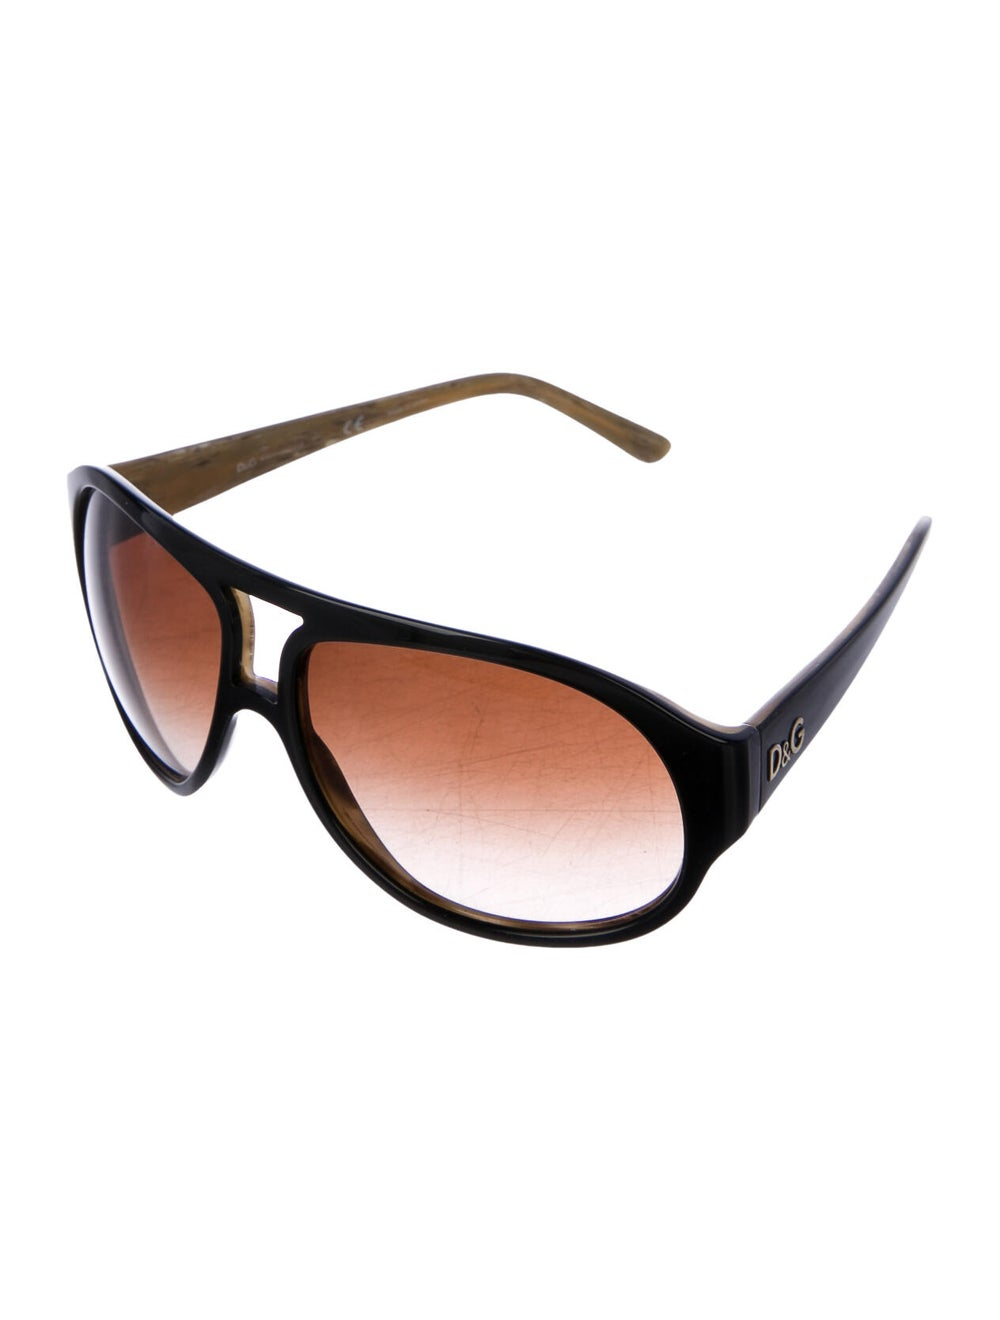 Dolce & Gabbana Gradient Aviator Sunglasses black - image 2